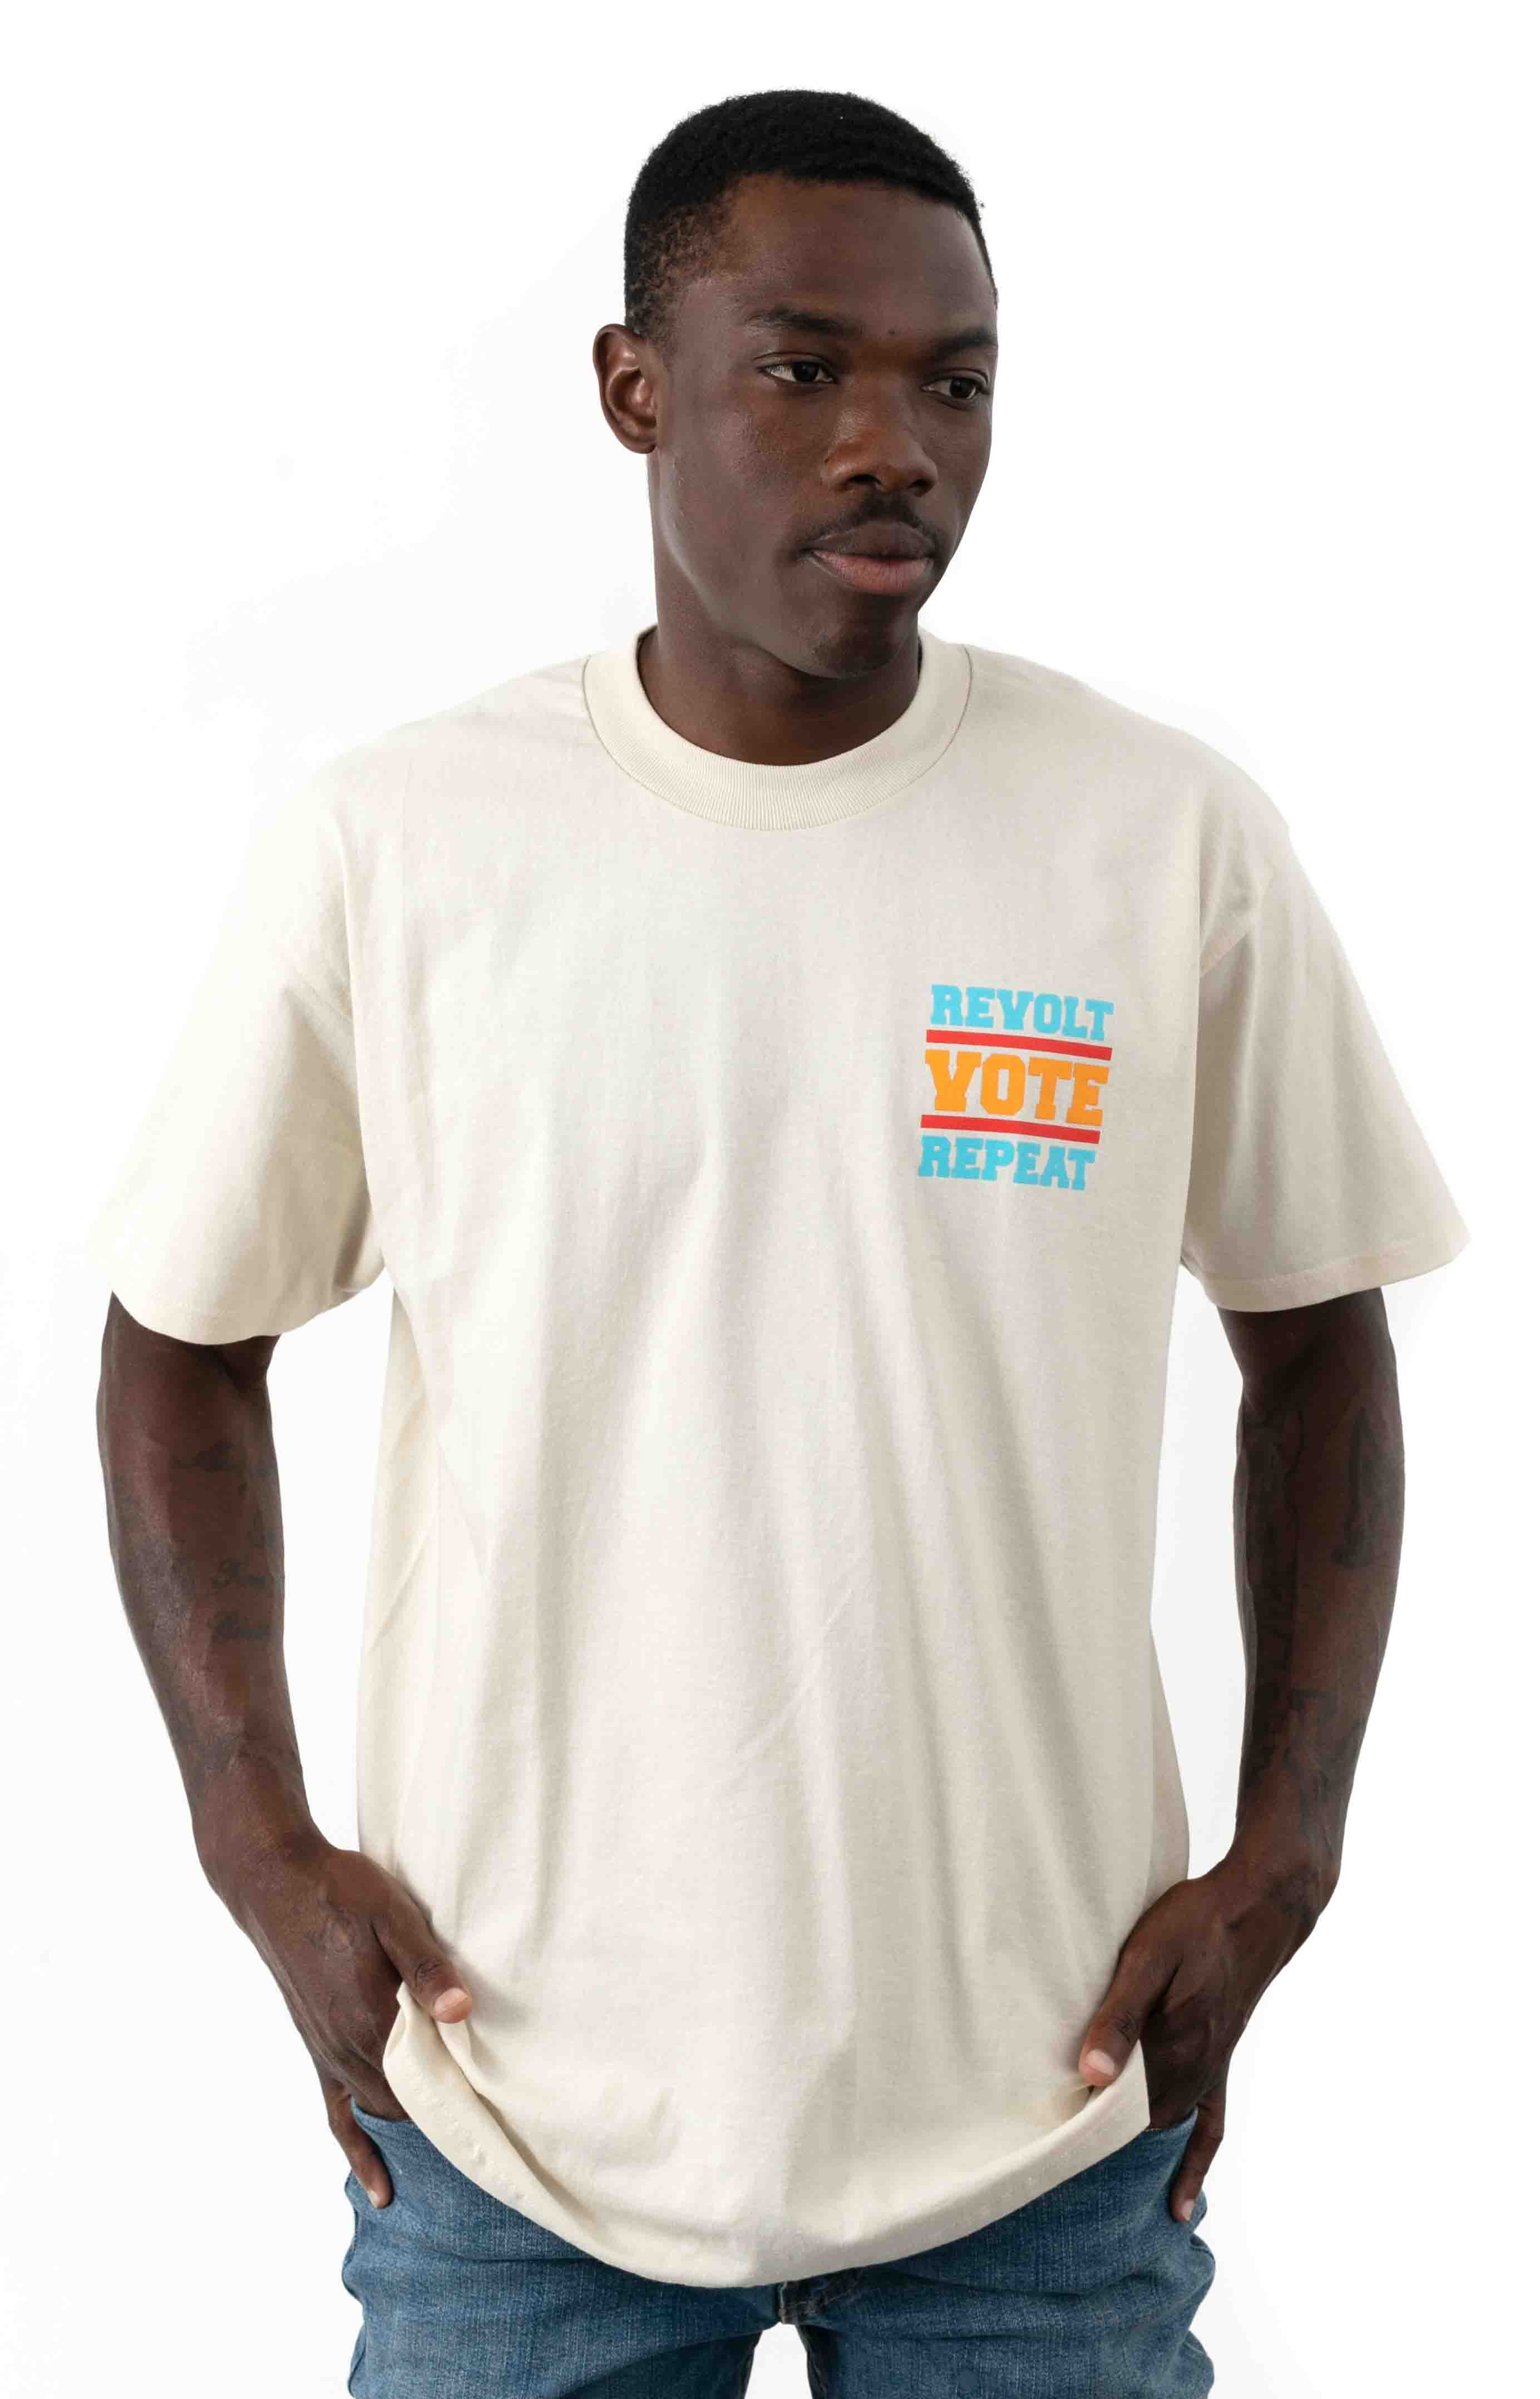 Revolt Vote Repeat T-Shirt - Cream  2